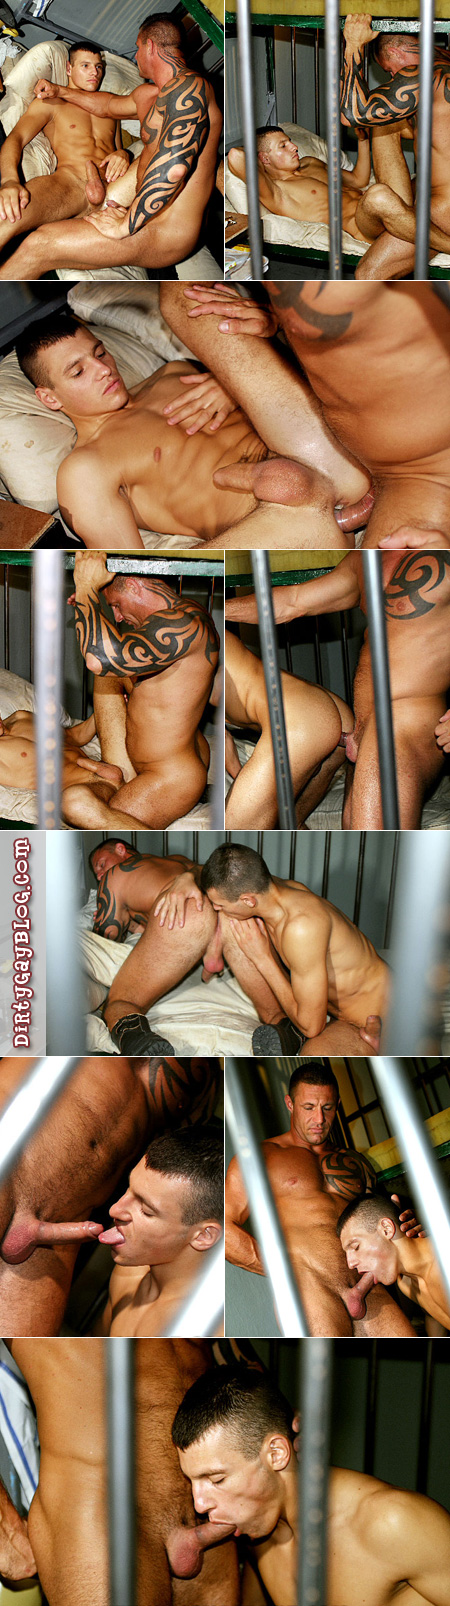 Jailhouse perks for horny male guards